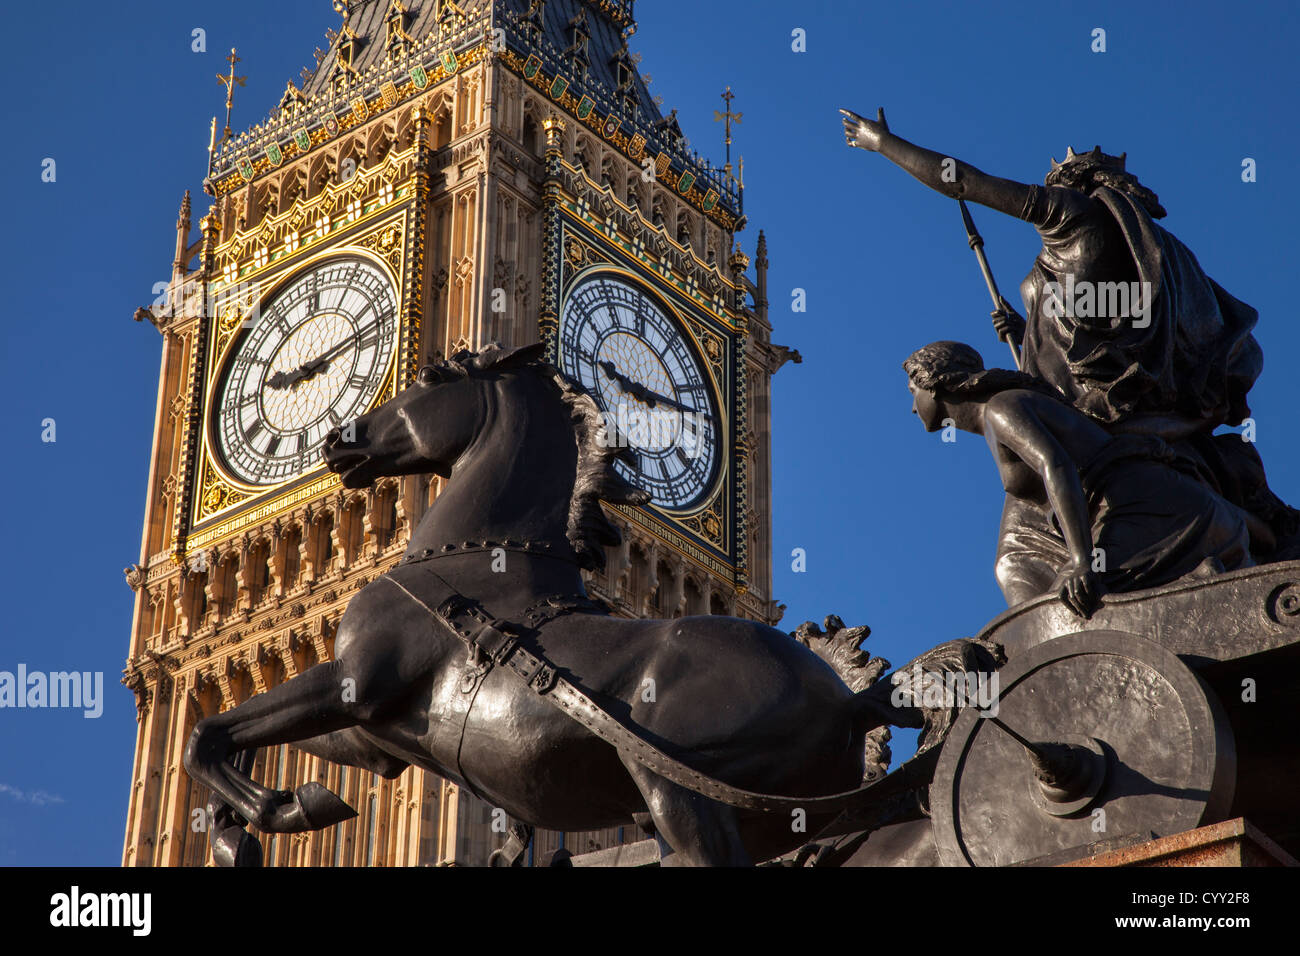 Horse and chariot statue of Queen Boudicca and her daughters below Big Ben at Embankment, Westminster, London England, Stock Photo